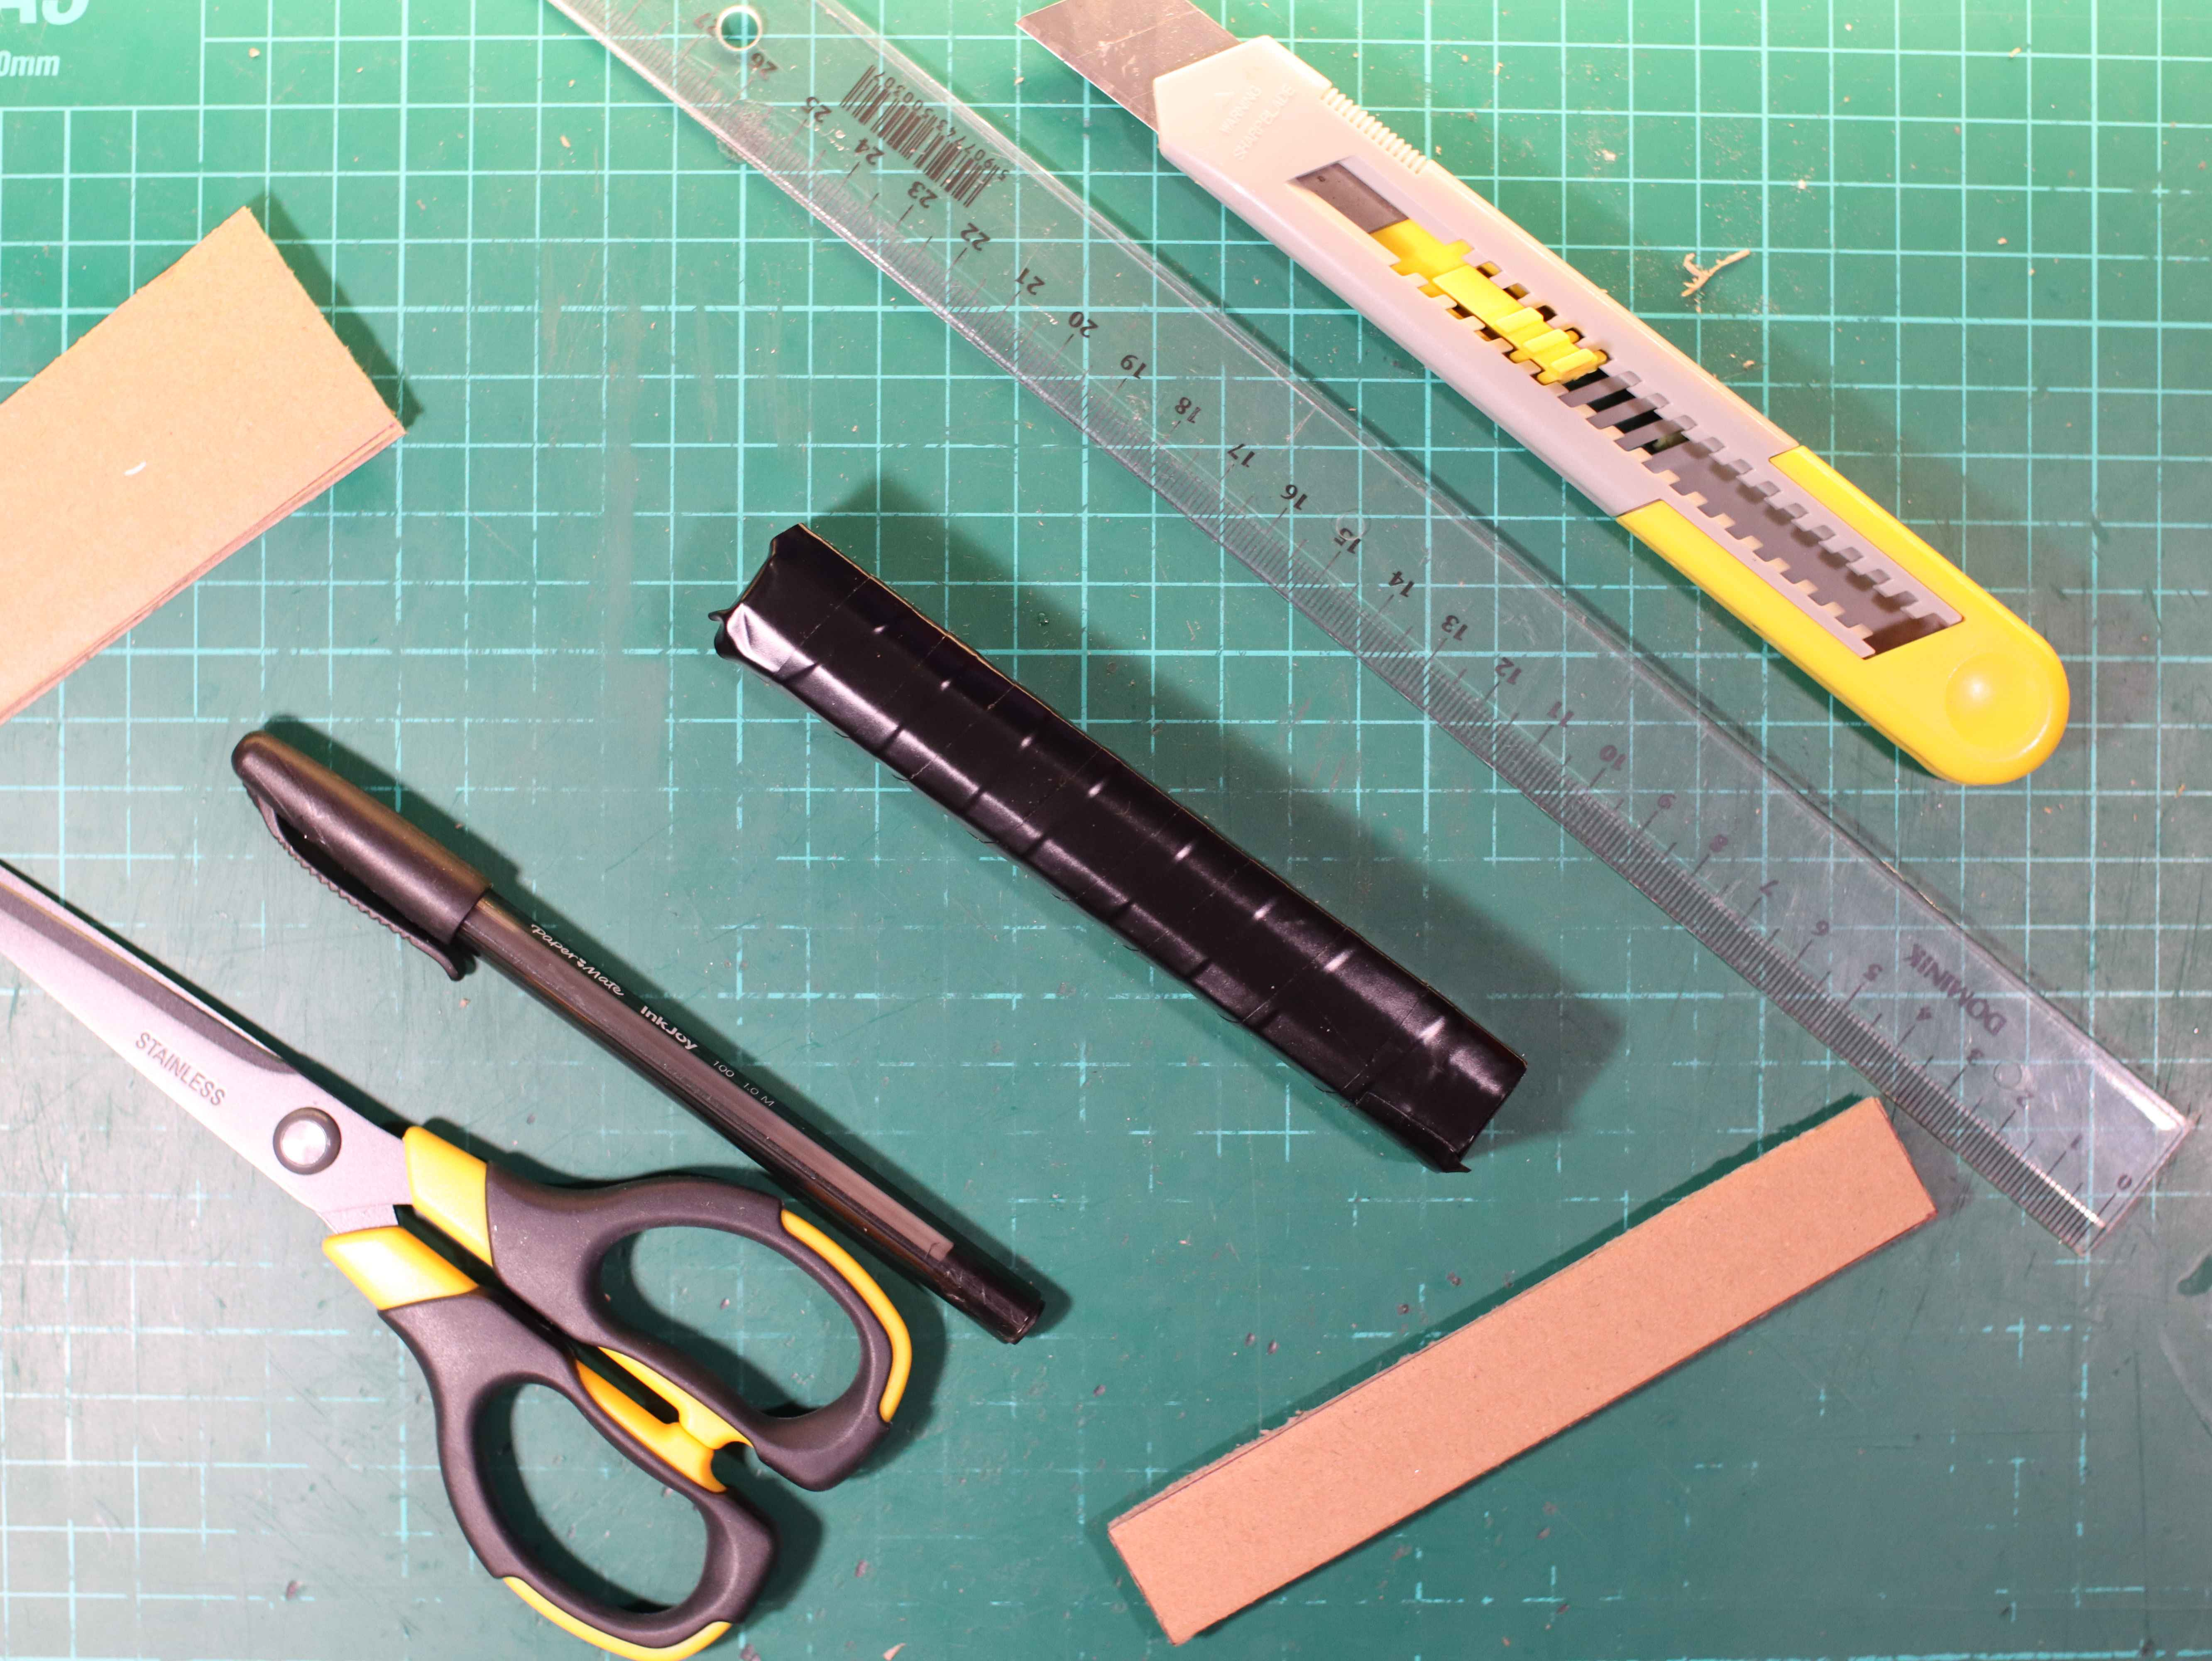 Cardboard battery covered with black insulating tape. Scissors, a knife, a pen, a ruler are on the green service mat.